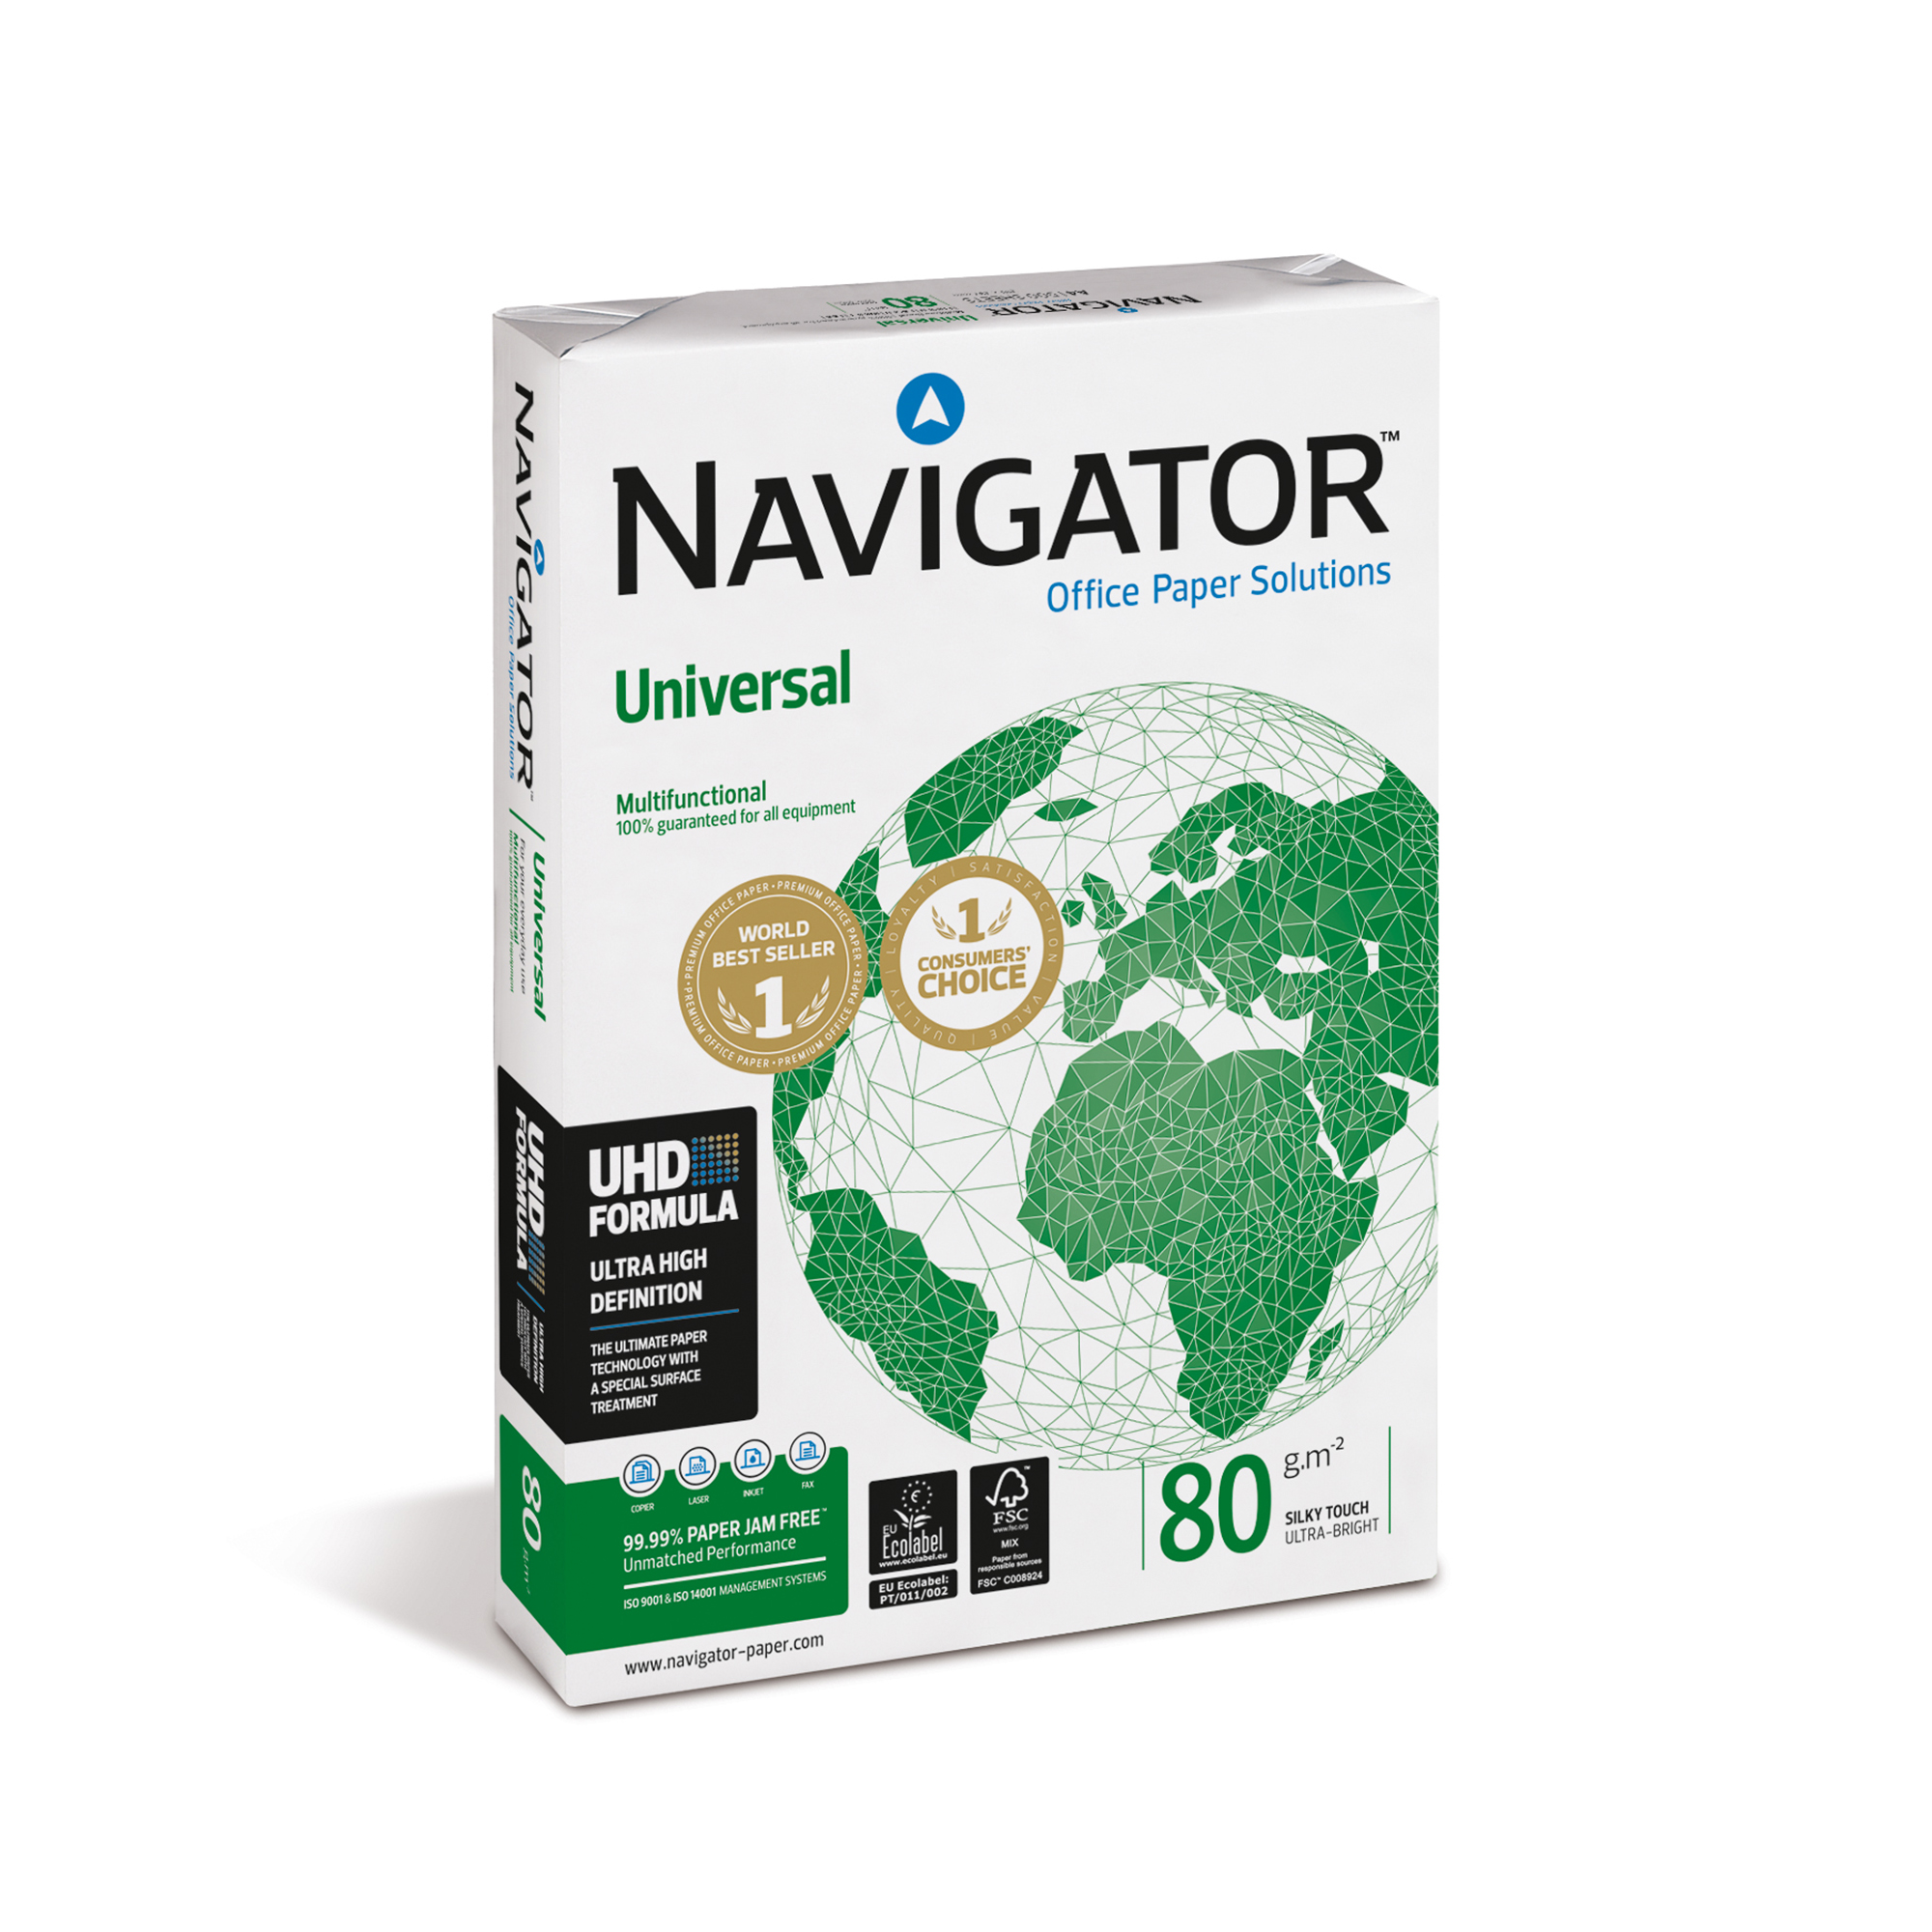 Navigator Universal Paper Multifunctional Ream-Wrapped - UK's Lowest Carbon 80gsm